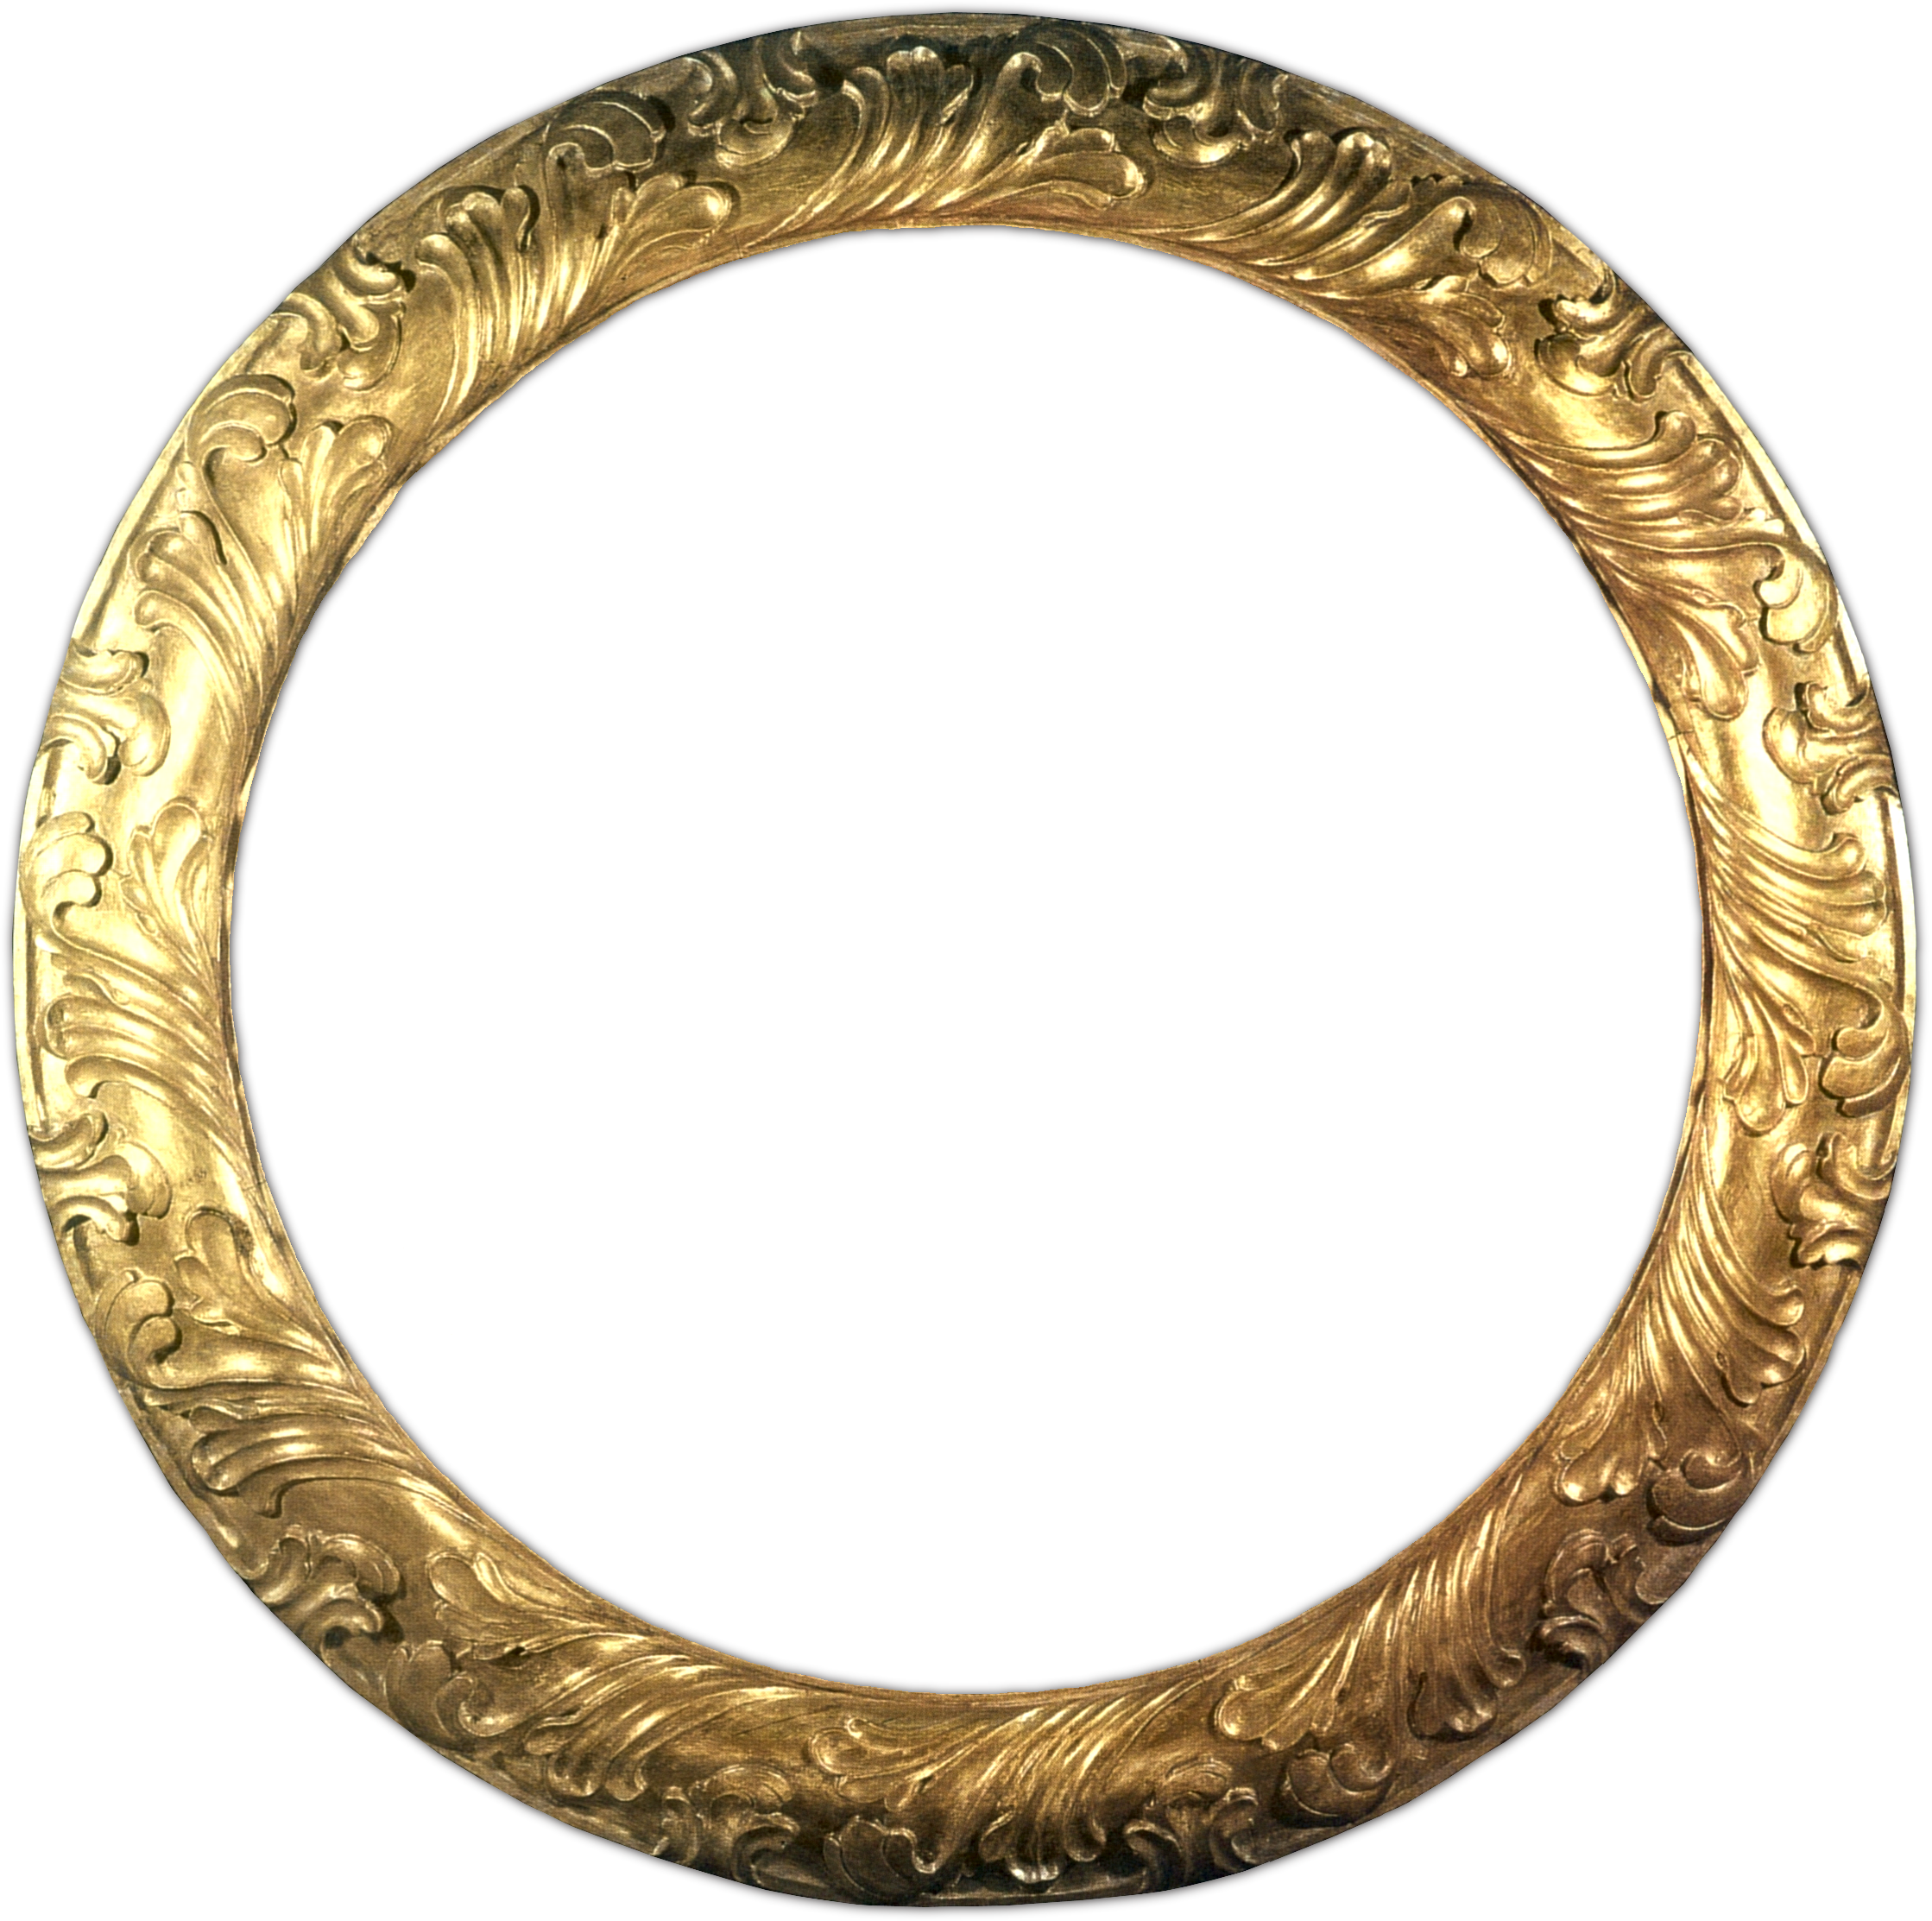 Oval gold frame png. Circle no mat borders